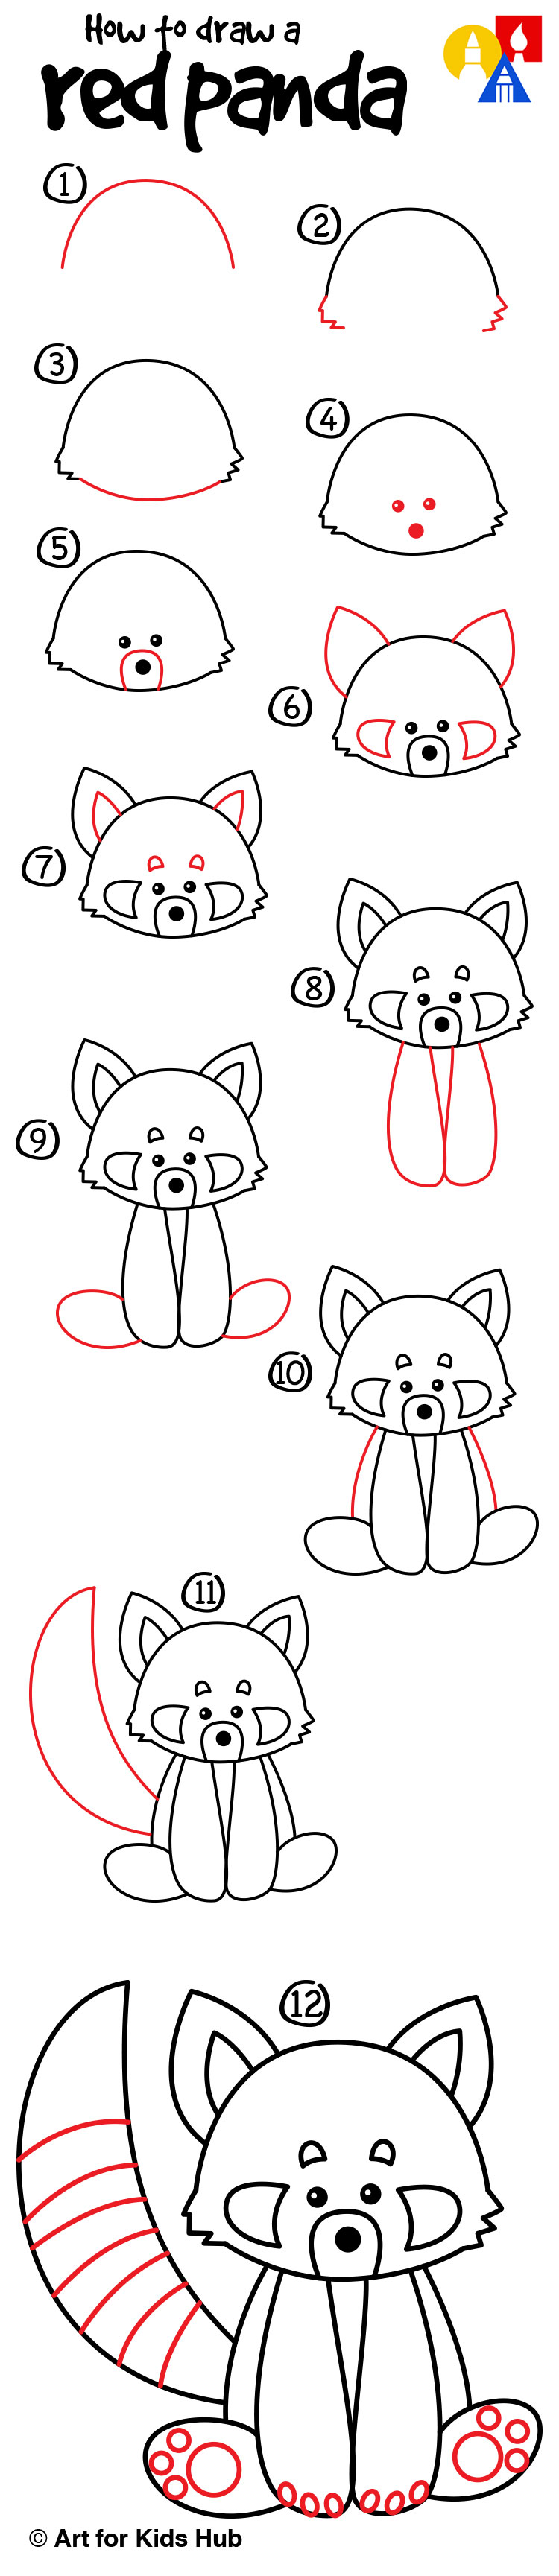 Drawn red panda step by step Draw Draw Panda To Learning